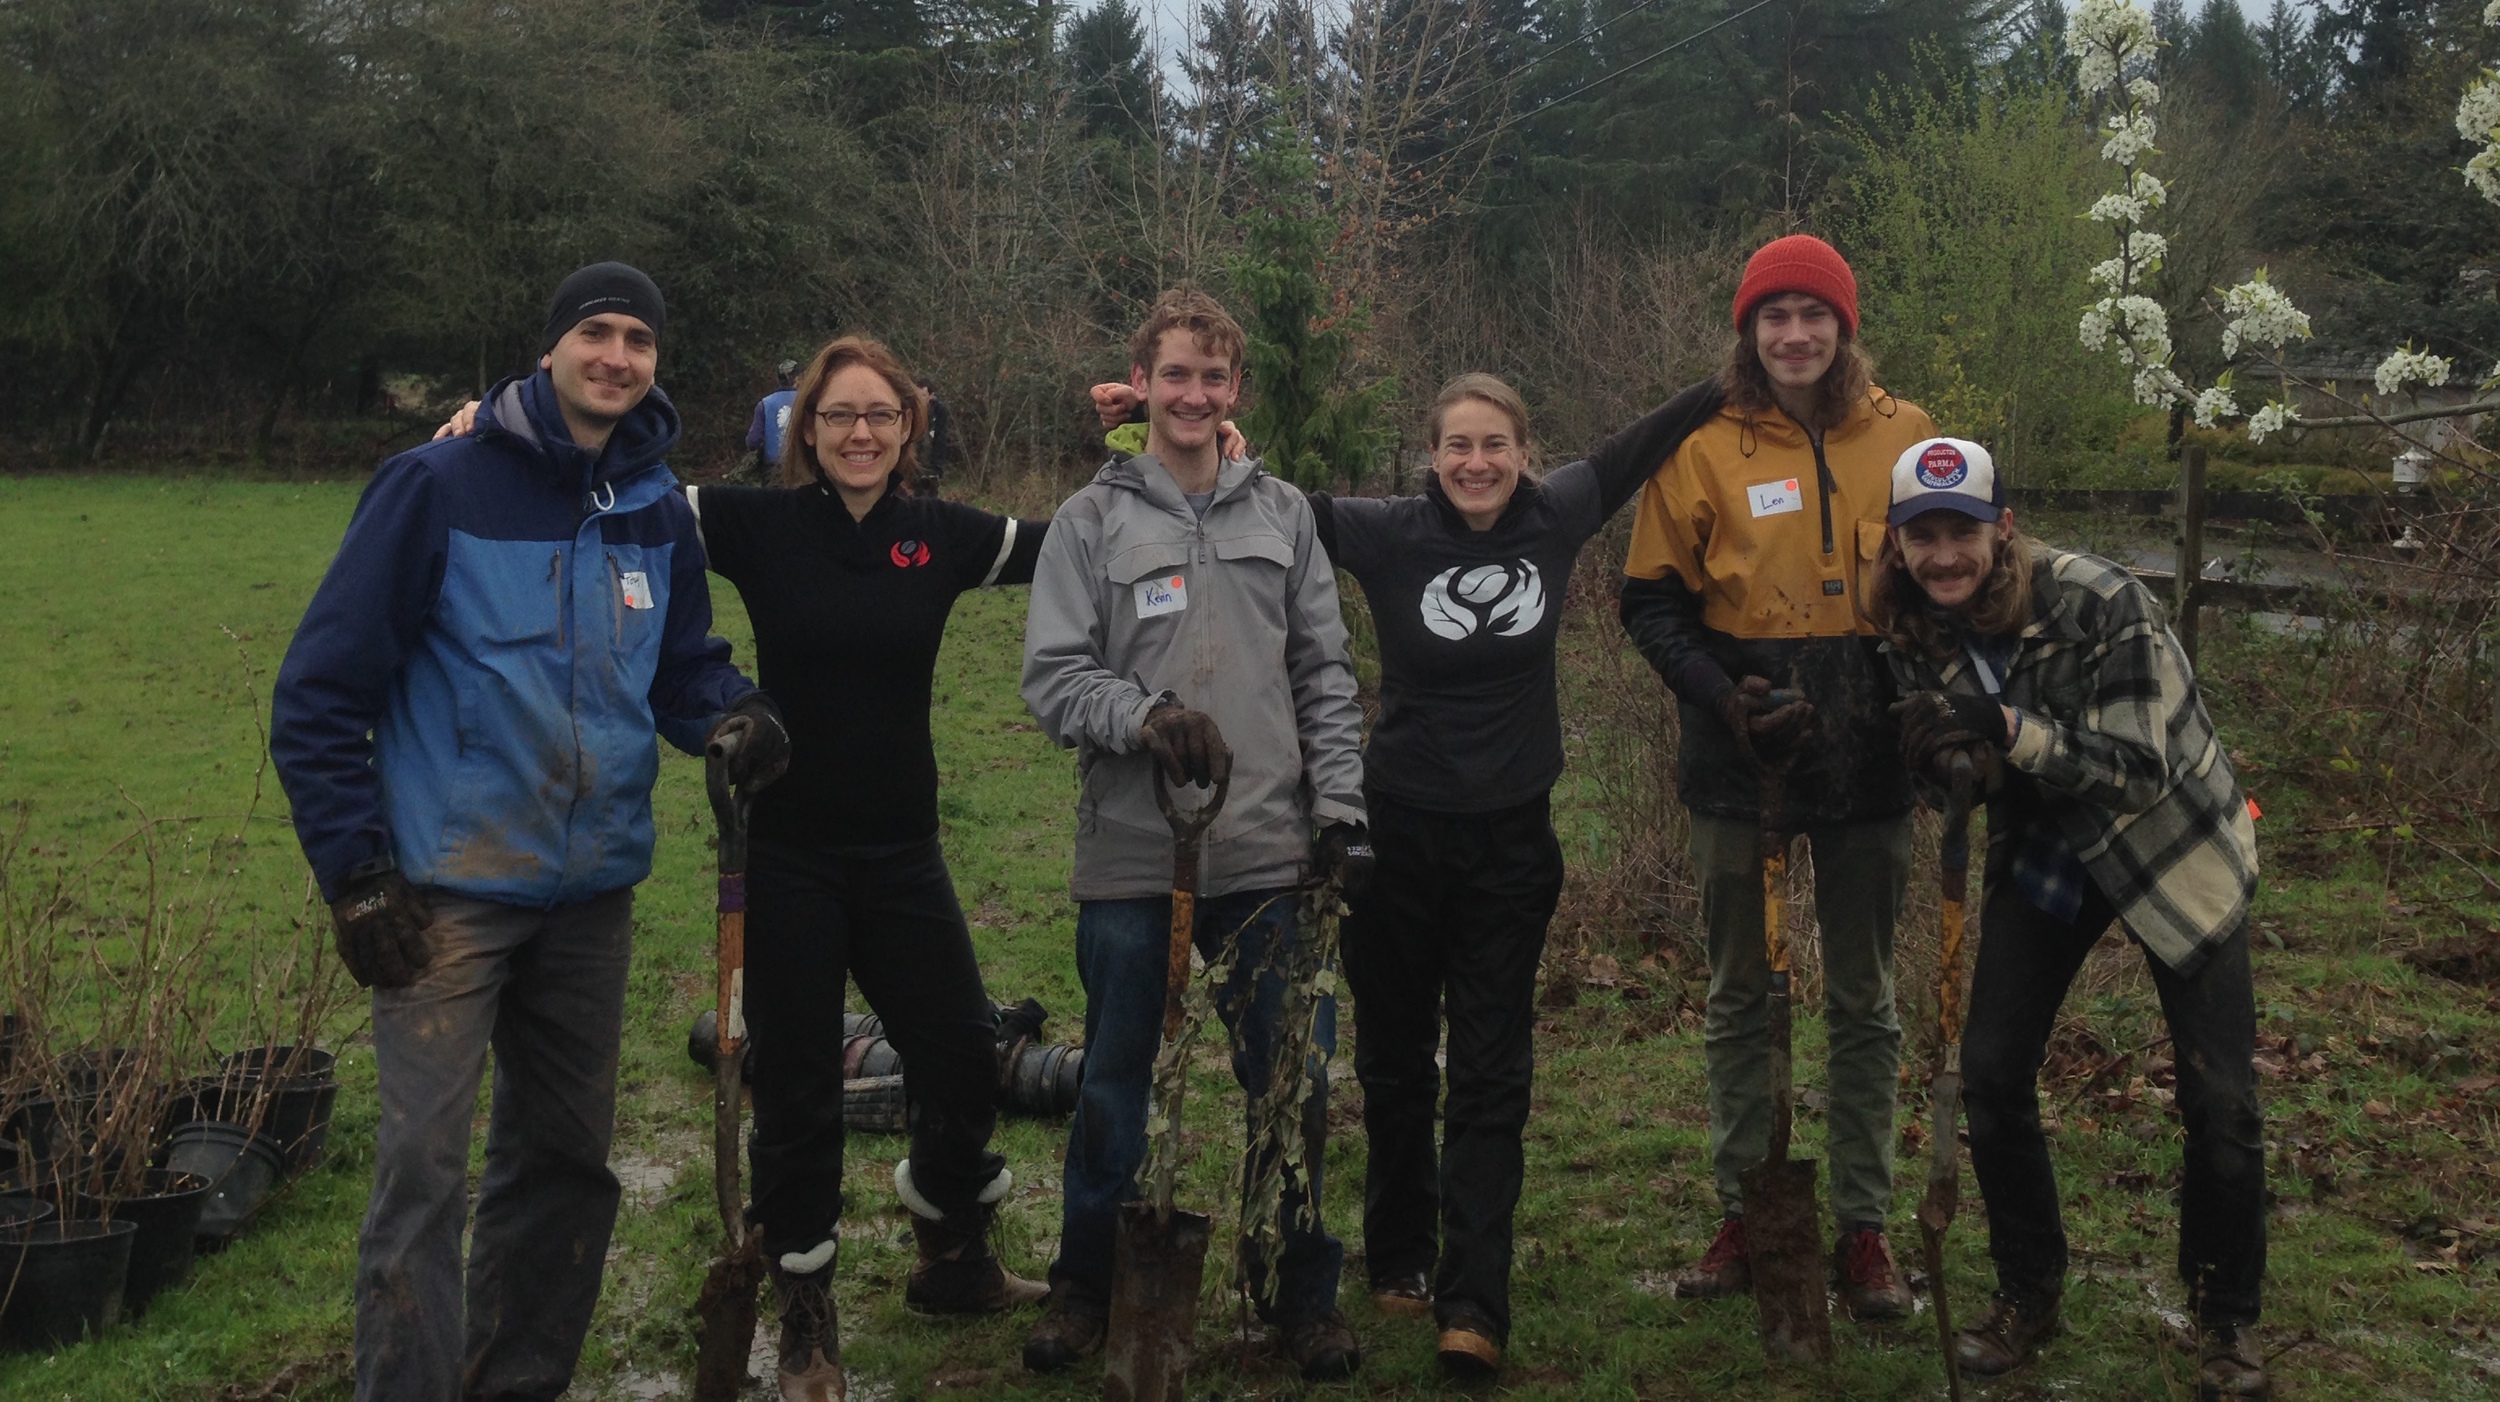 Nossa Familia team members on a staff volunteer day, planting native shrubs on a with Portland non-profit Friends of Trees.